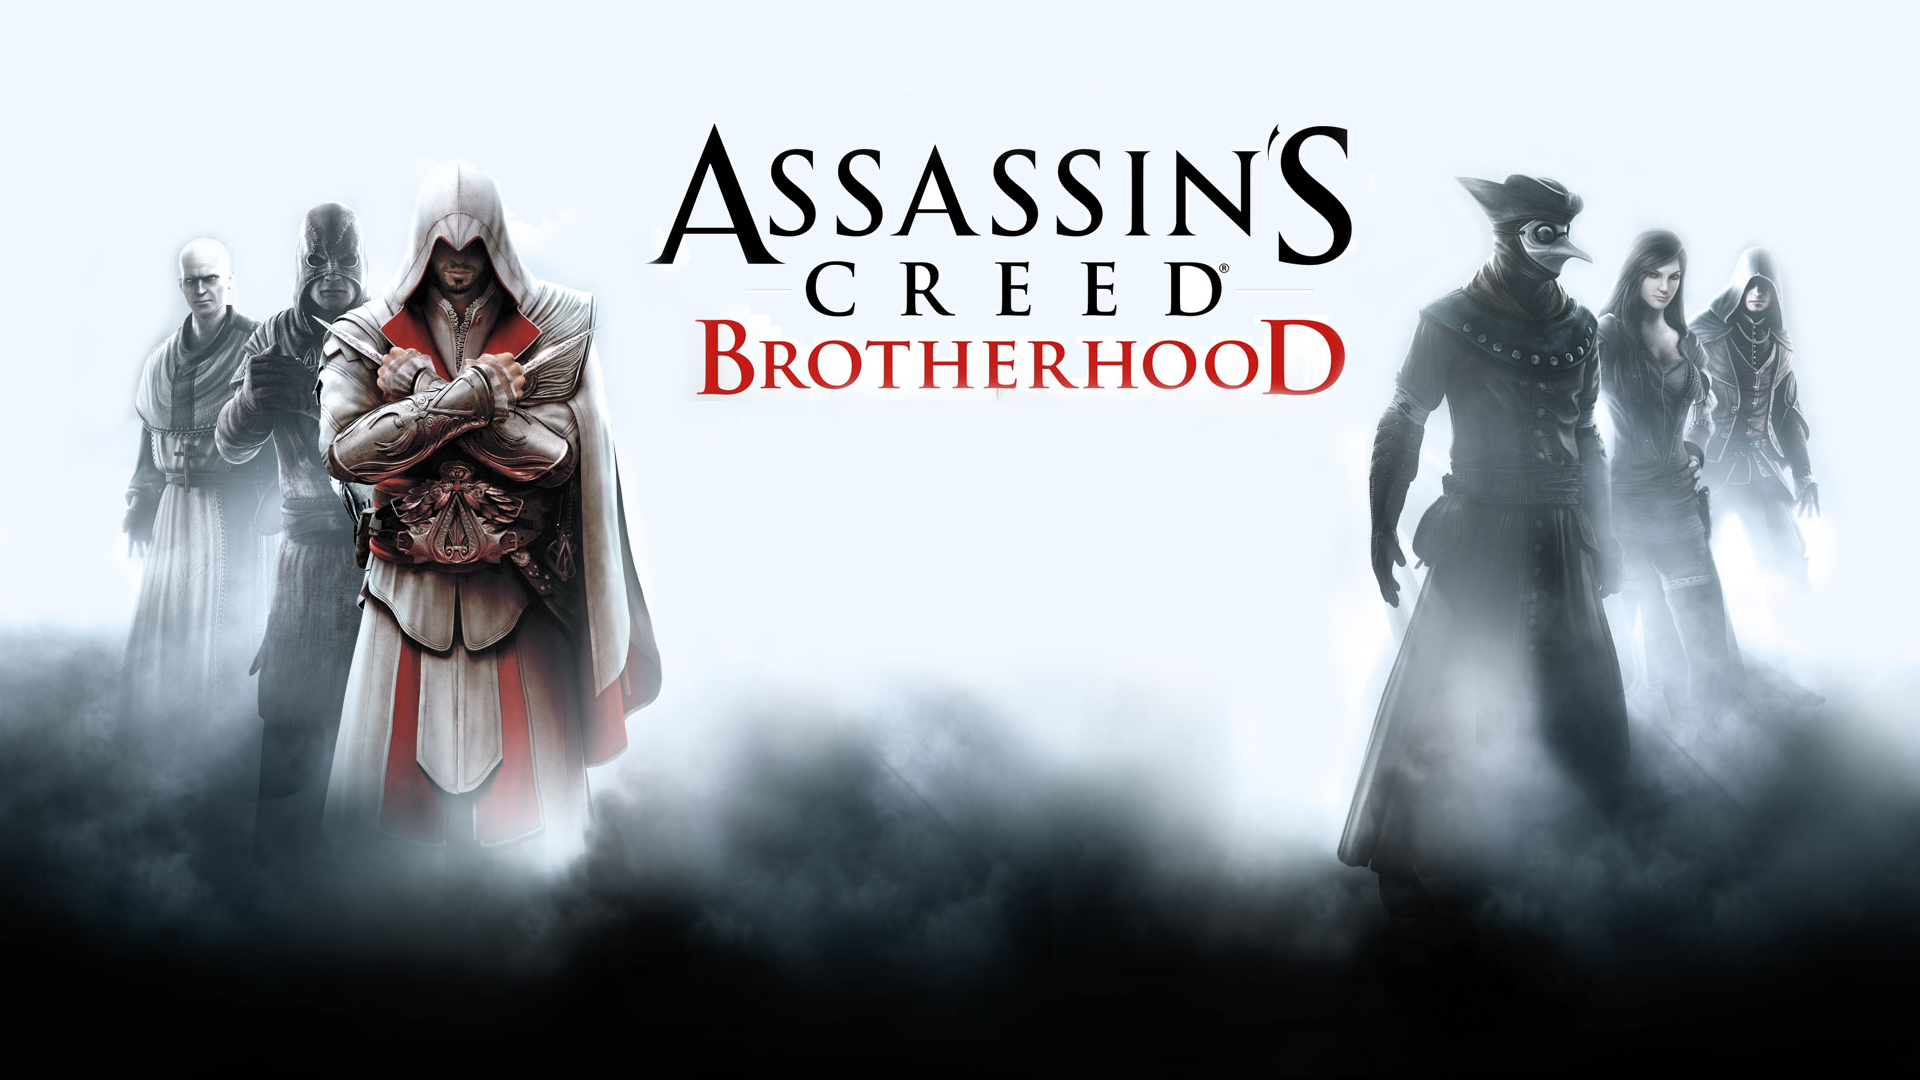 Assassins Creed Brotherhood 1080p Wallpapers HD Wallpapers 1920x1080